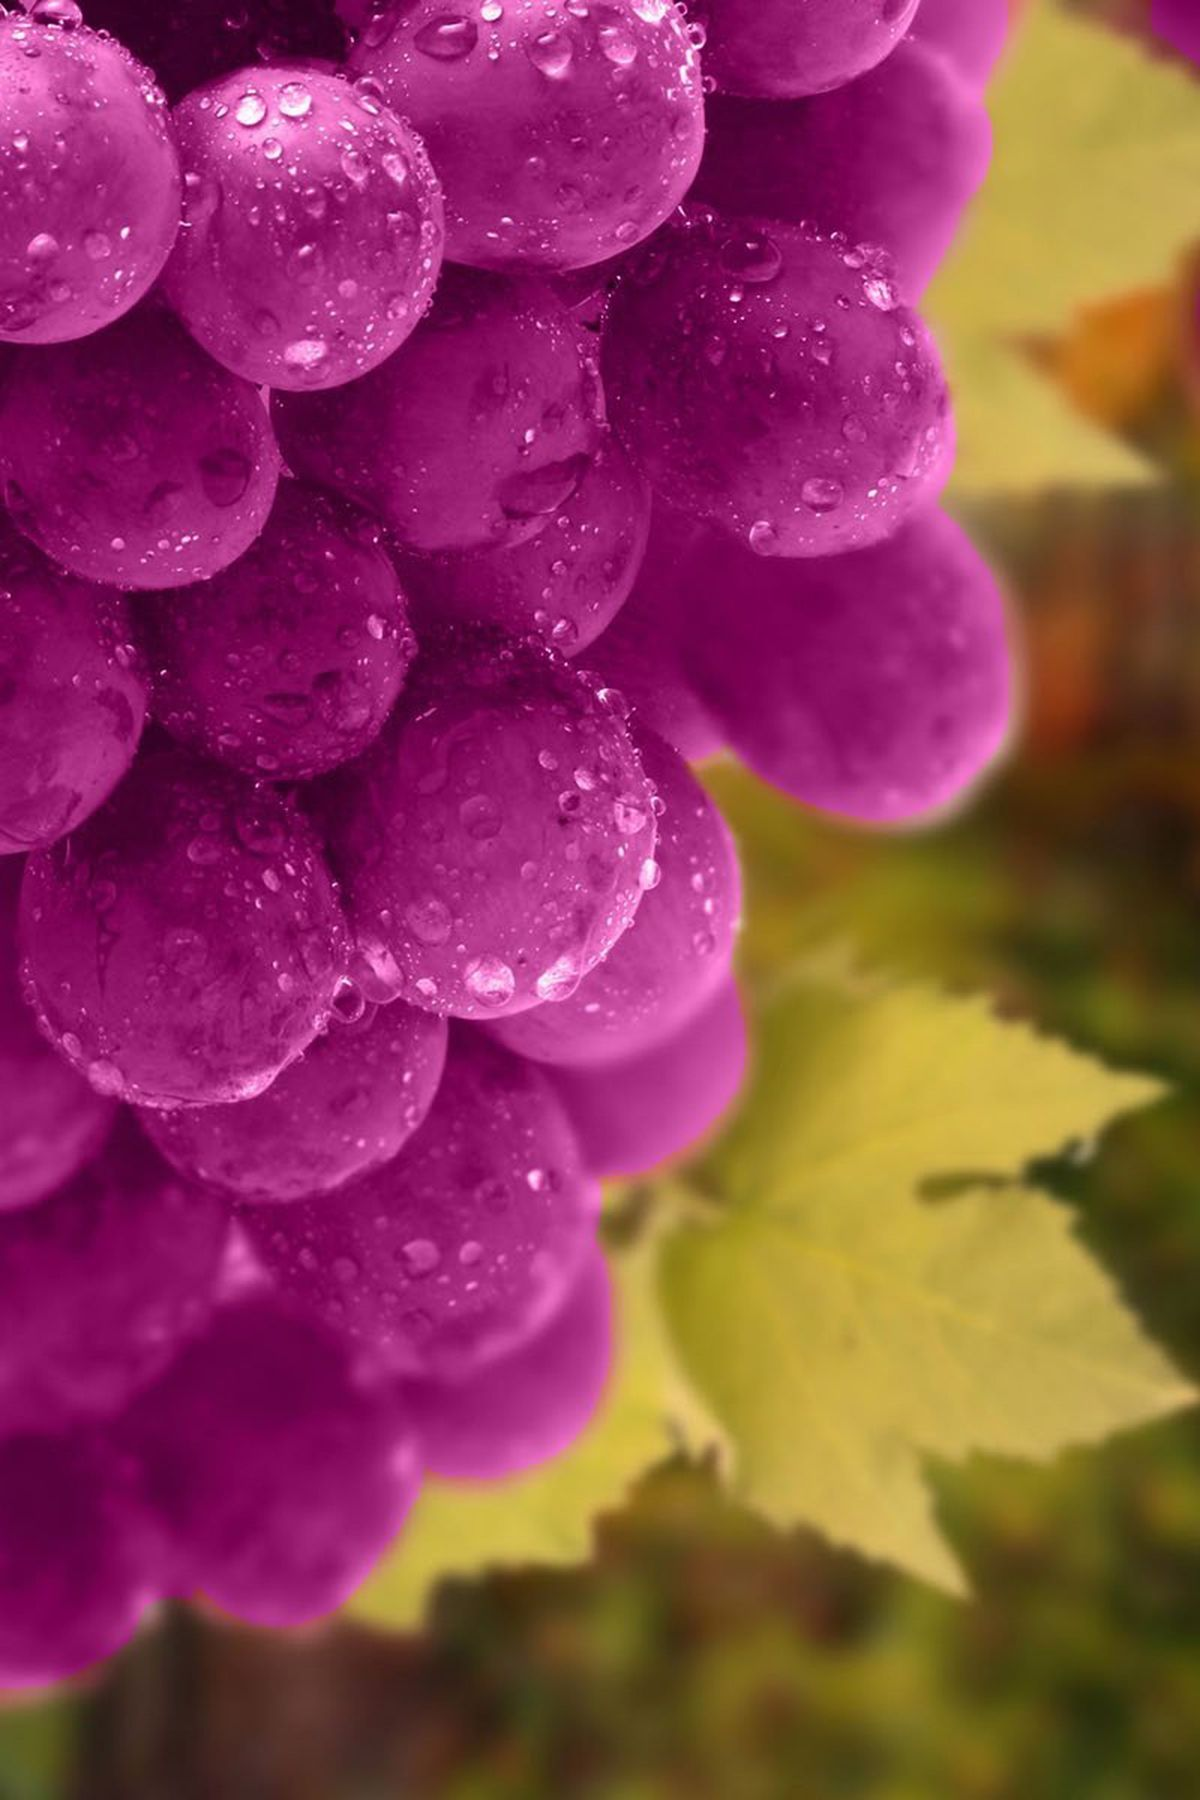 Grapes On Tree Wonderful Natural Fruits Wallpapers Mobile Wallpaper Purple Grapes Tree Wonderfu Fruit Wallpaper Colourful Wallpaper Iphone Mobile Wallpaper